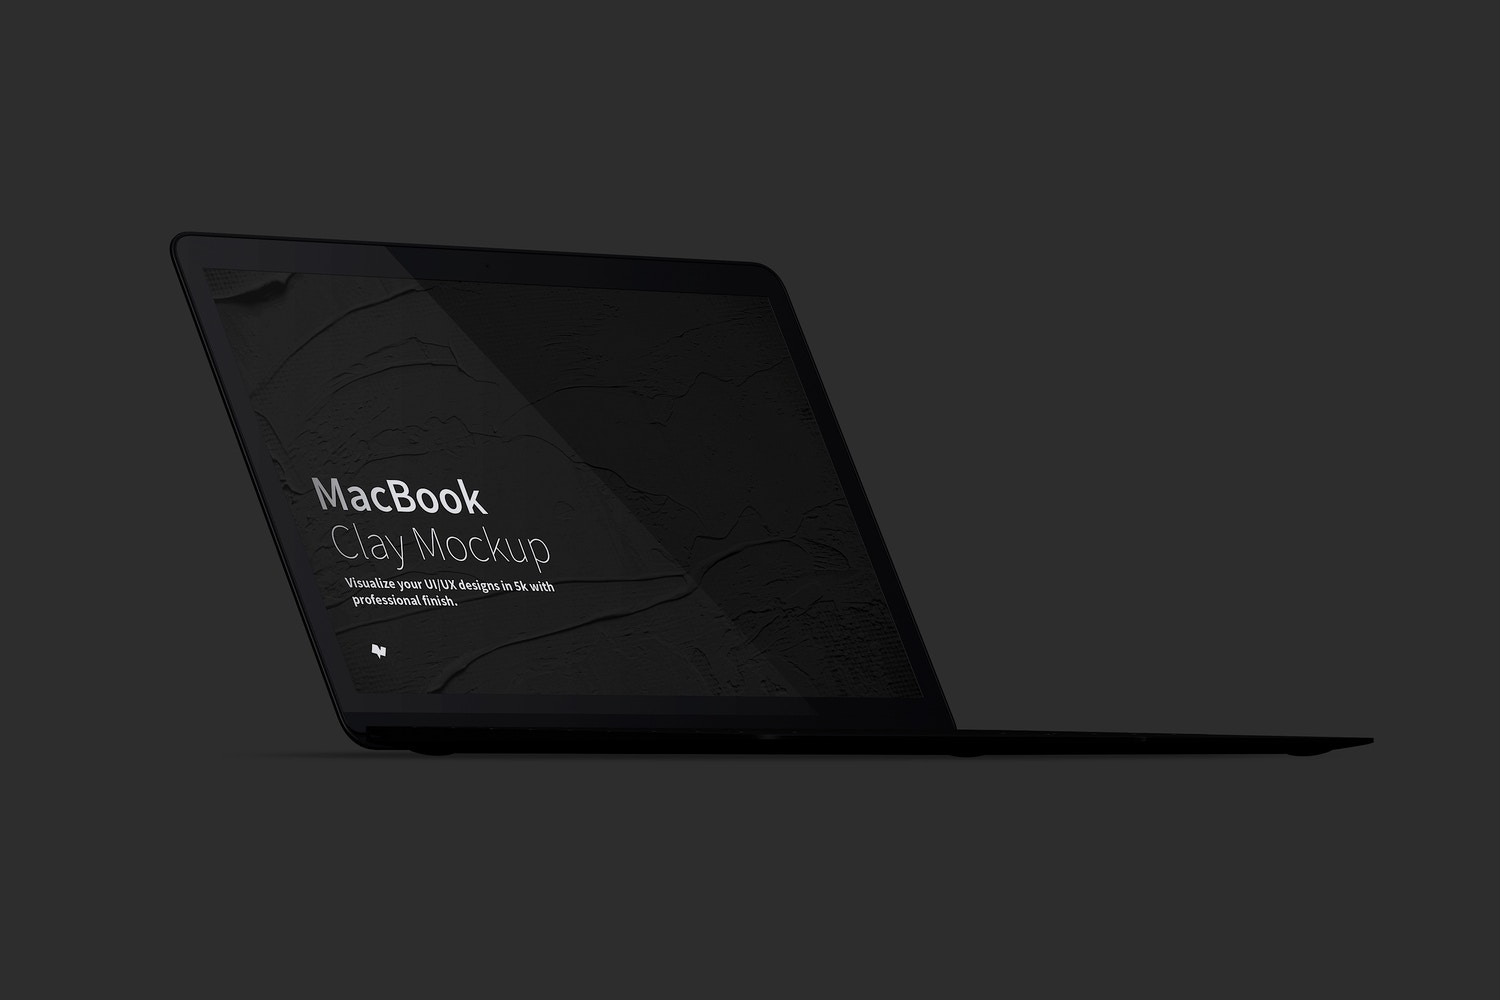 Clay MacBook Mockup, Front Left View (6) by Original Mockups on Original Mockups